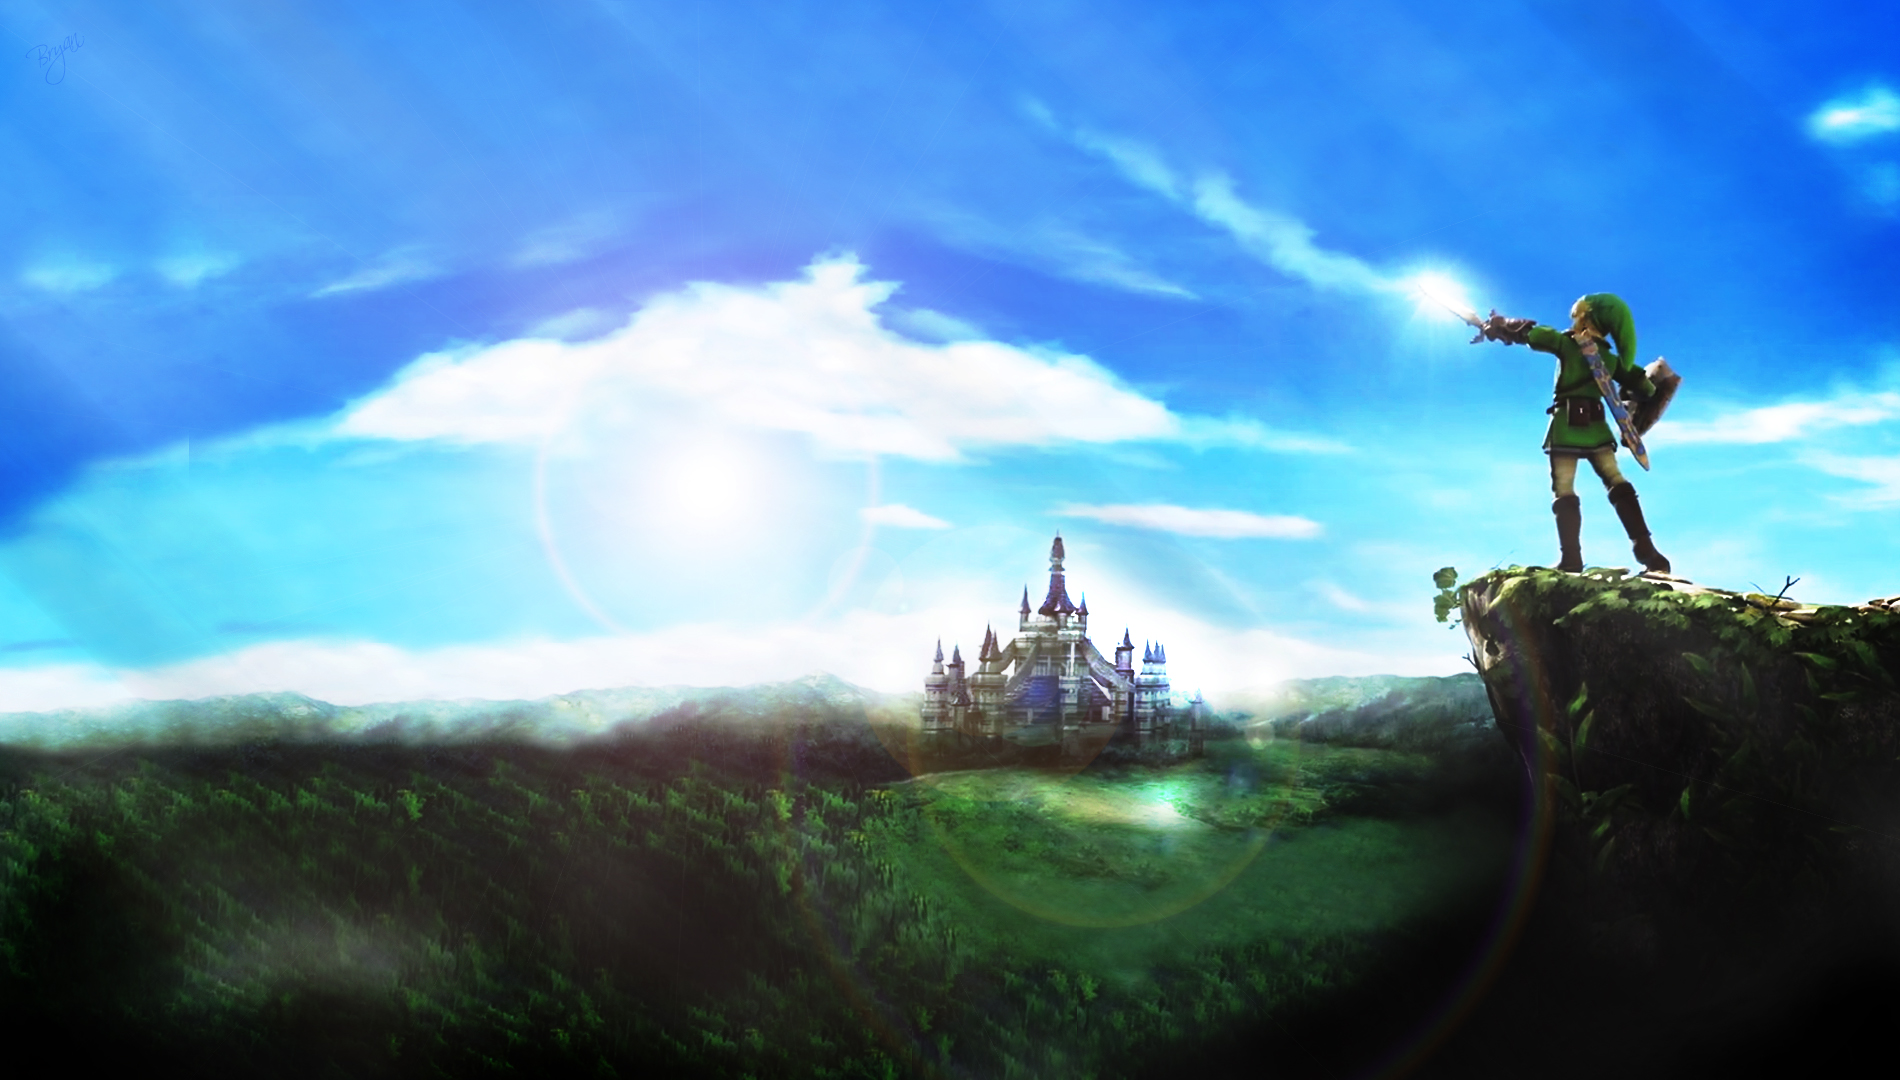 Hd wallpaper zelda - Zelda Wallpaper Mountain Full Hd By Bryansonata Fan Art Wallpaper